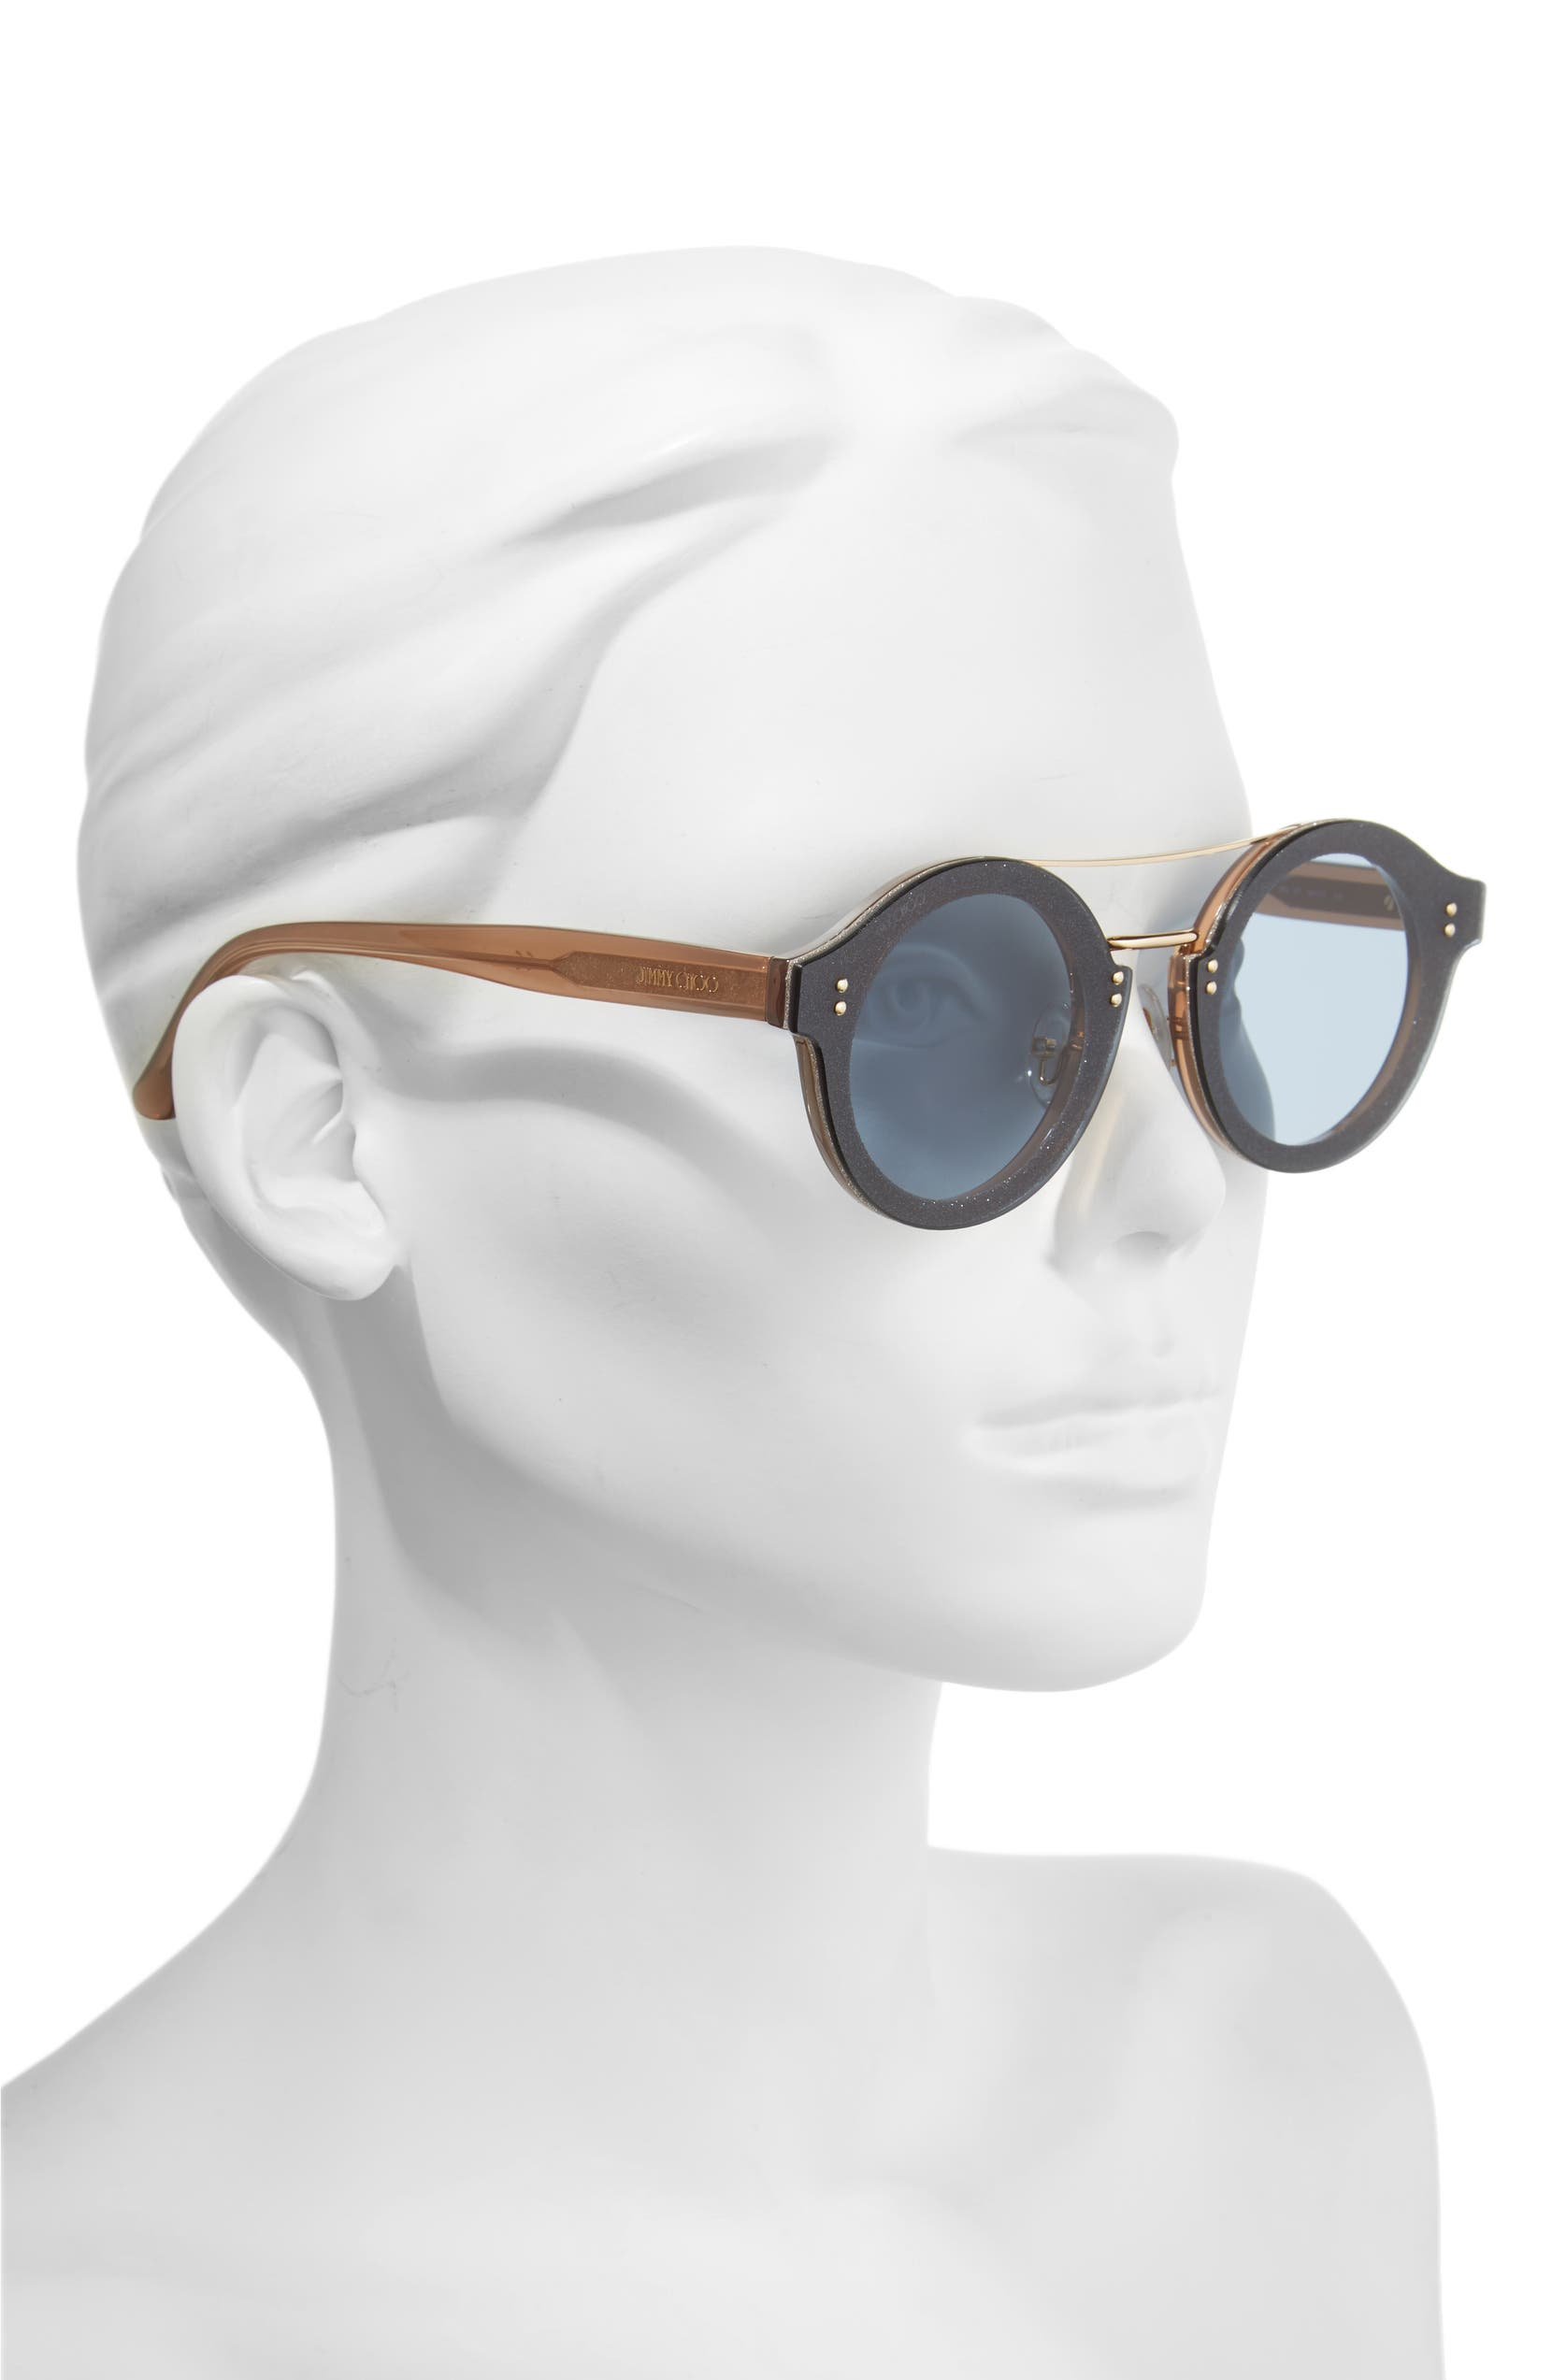 2a807b6c70 Jimmy Choo Monties 64mm Round Sunglasses